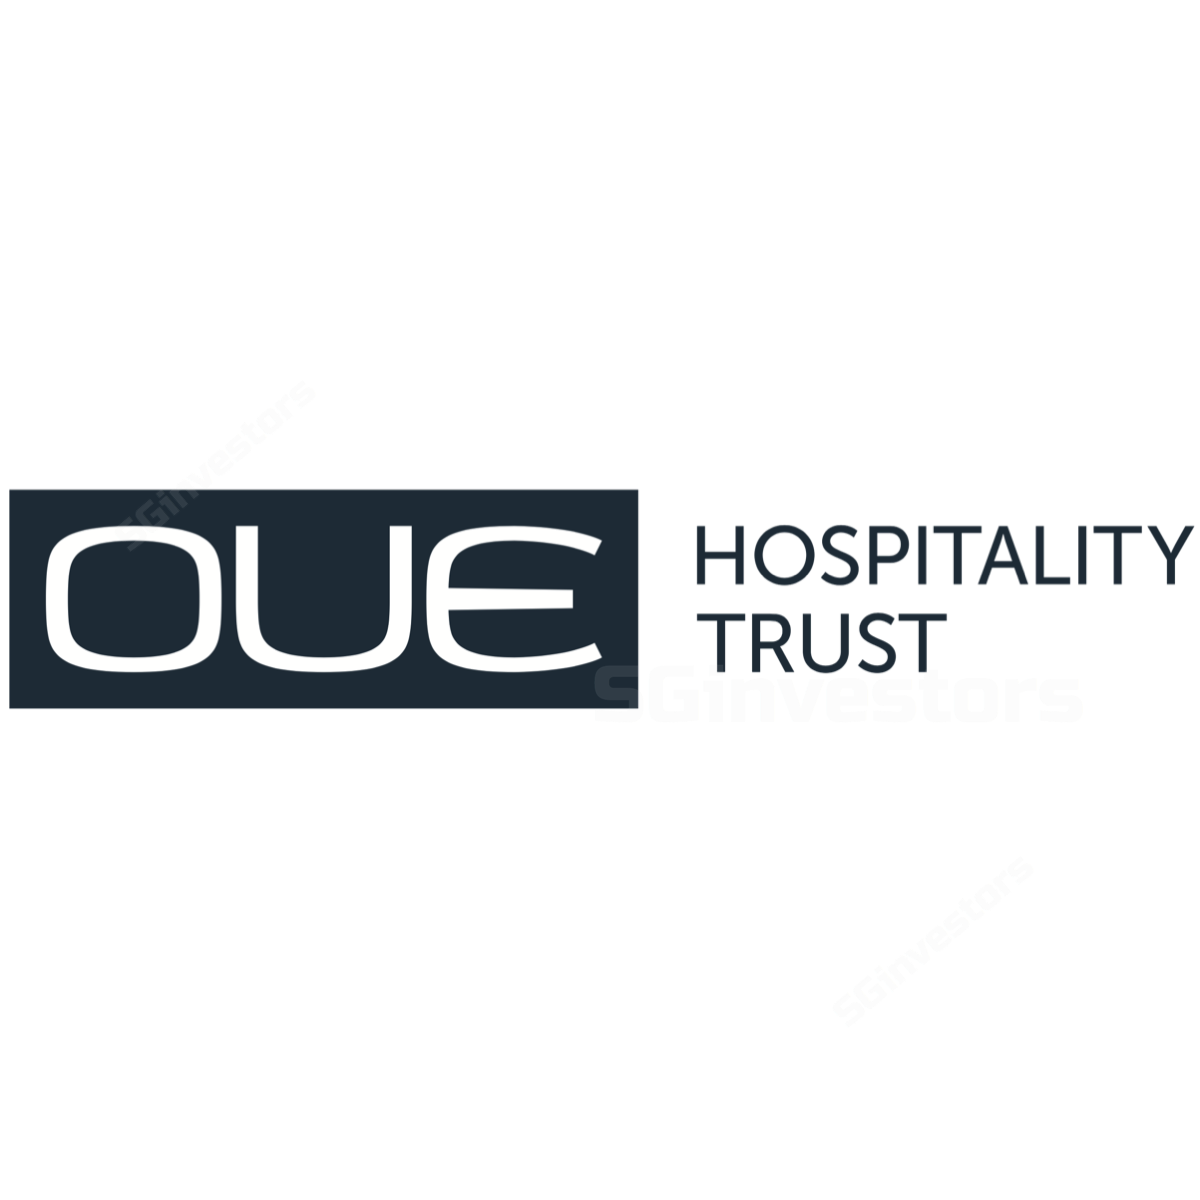 OUE Hospitality Trust - OCBC Investment 2018-01-31: A Good Year Ahead